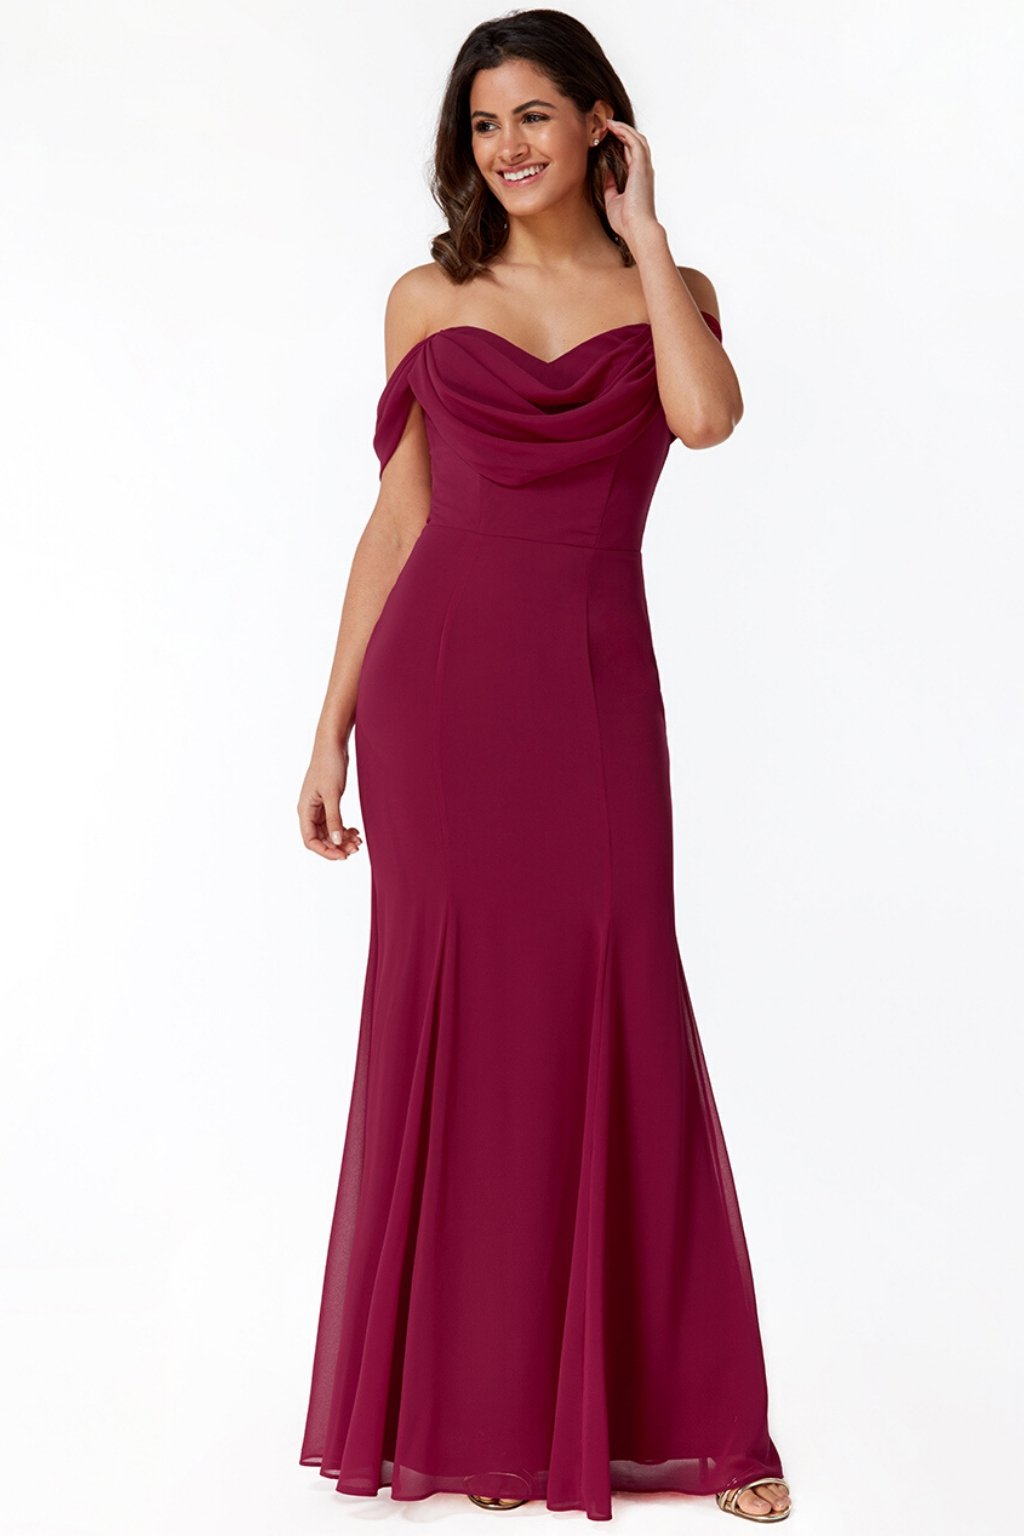 Raspberry chiffon off-the-shoulders formal dress